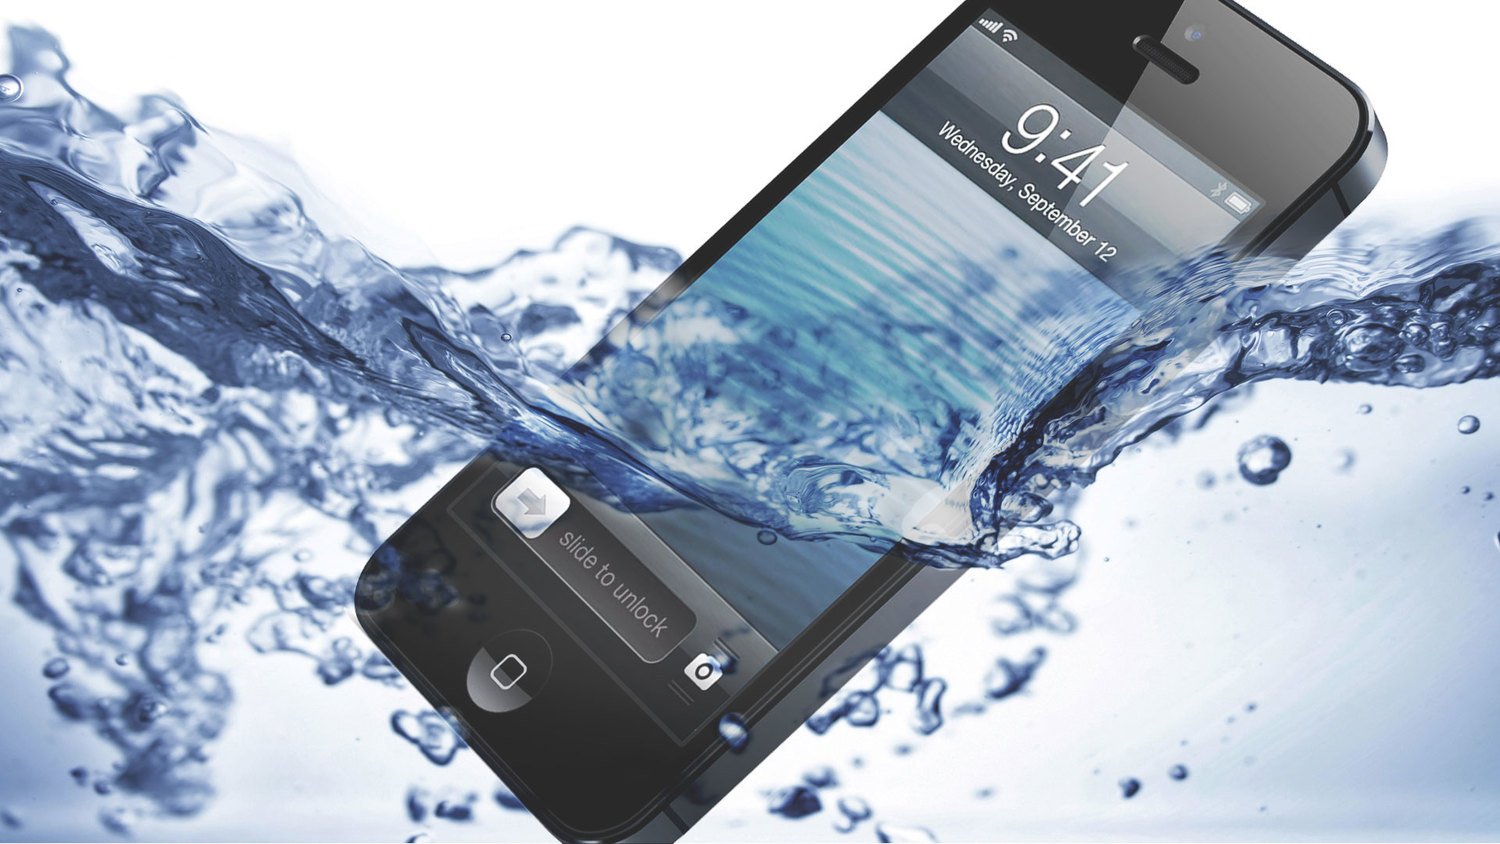 Liquid Damage What to do  Liquid Damage What to do iPhone Repair Newcastle  Mobile. Water Damage Repair Newcastle